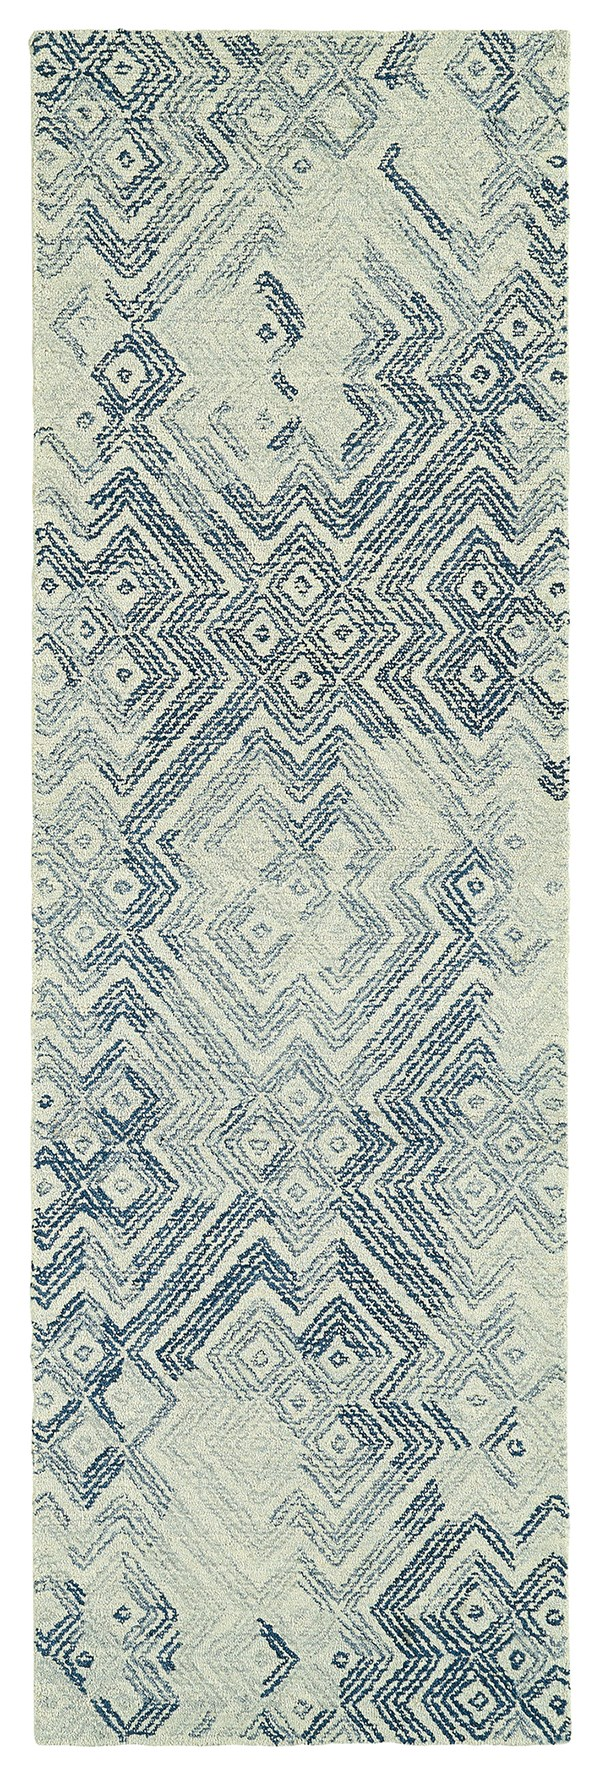 Ice (100) Contemporary / Modern Area Rug